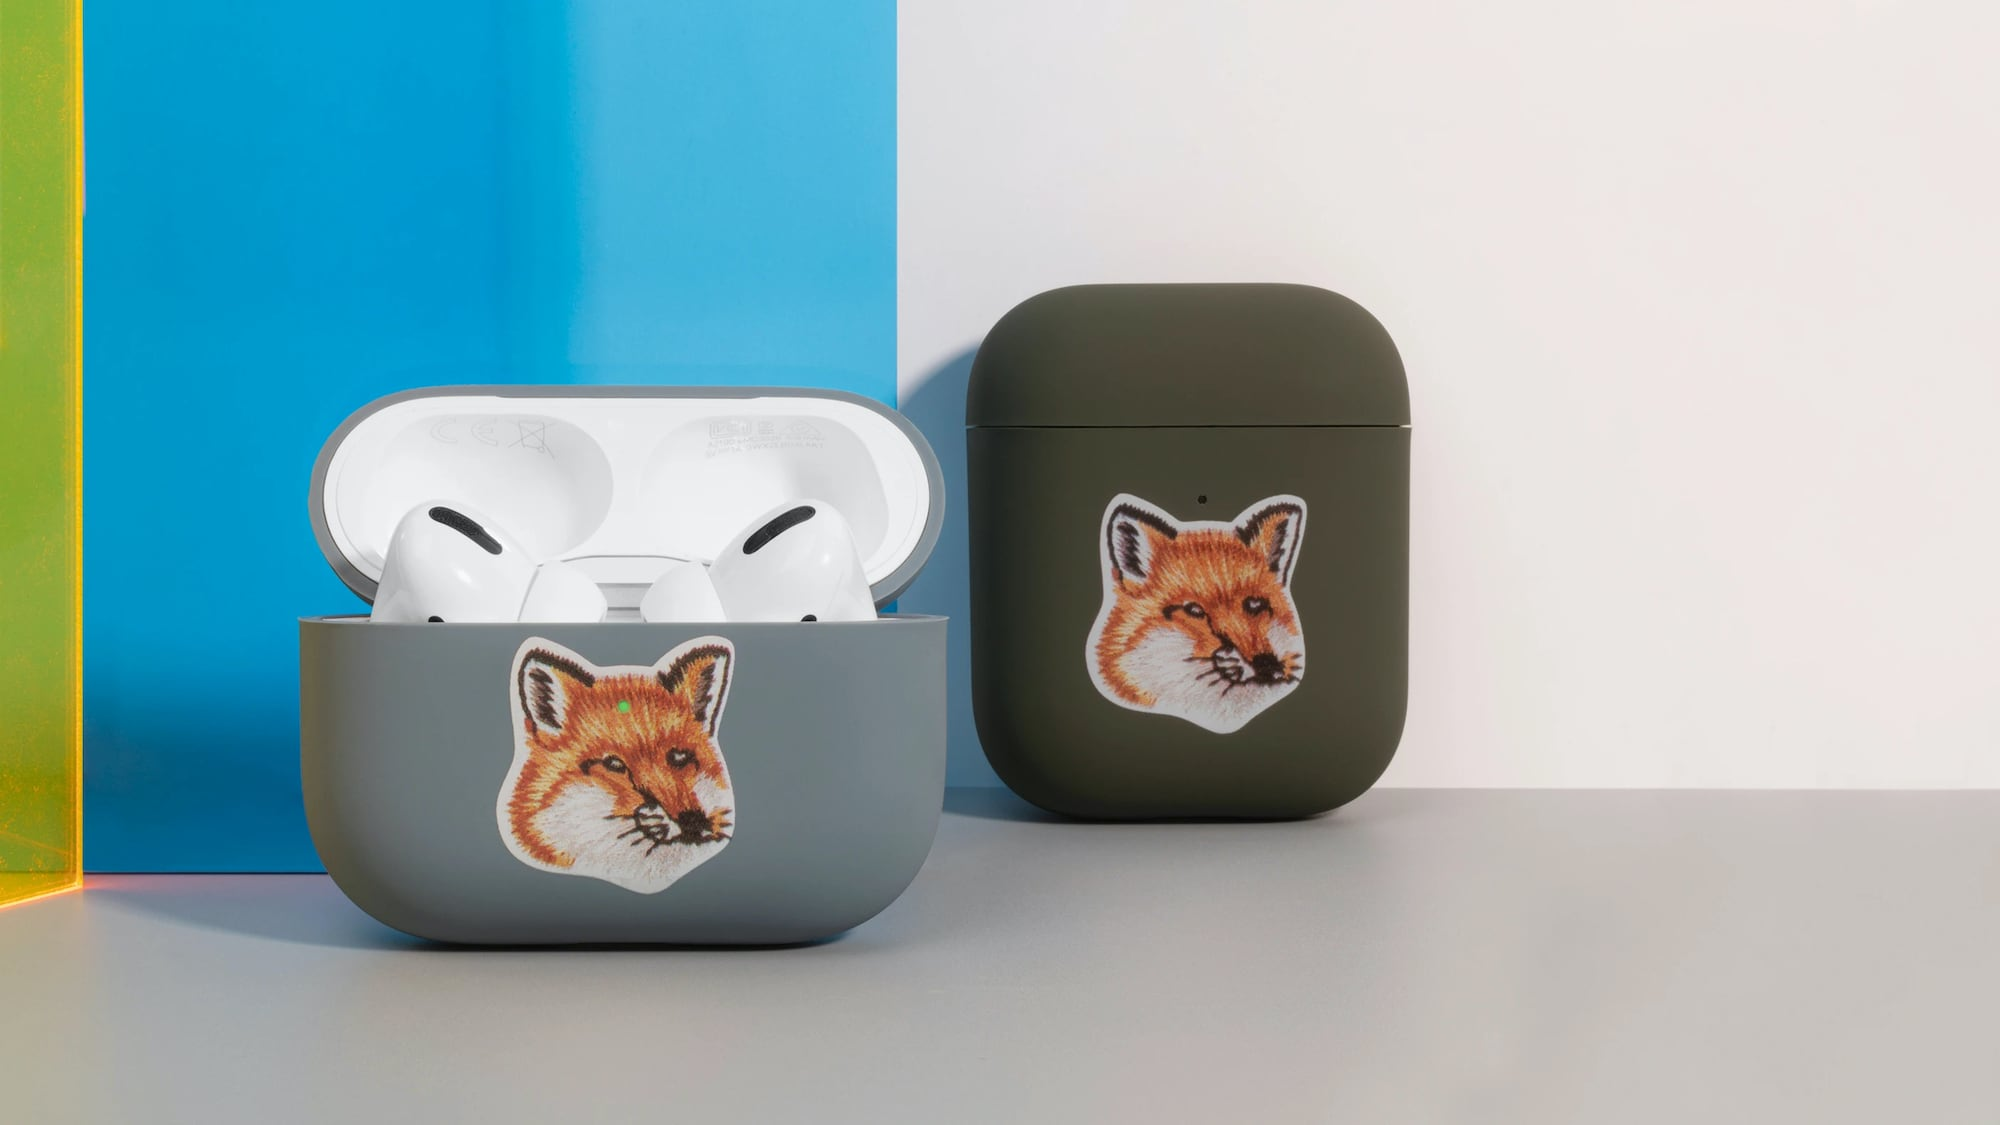 Native Union Maison Kitsuné case for AirPods silicone cover has an adorable fox head on it